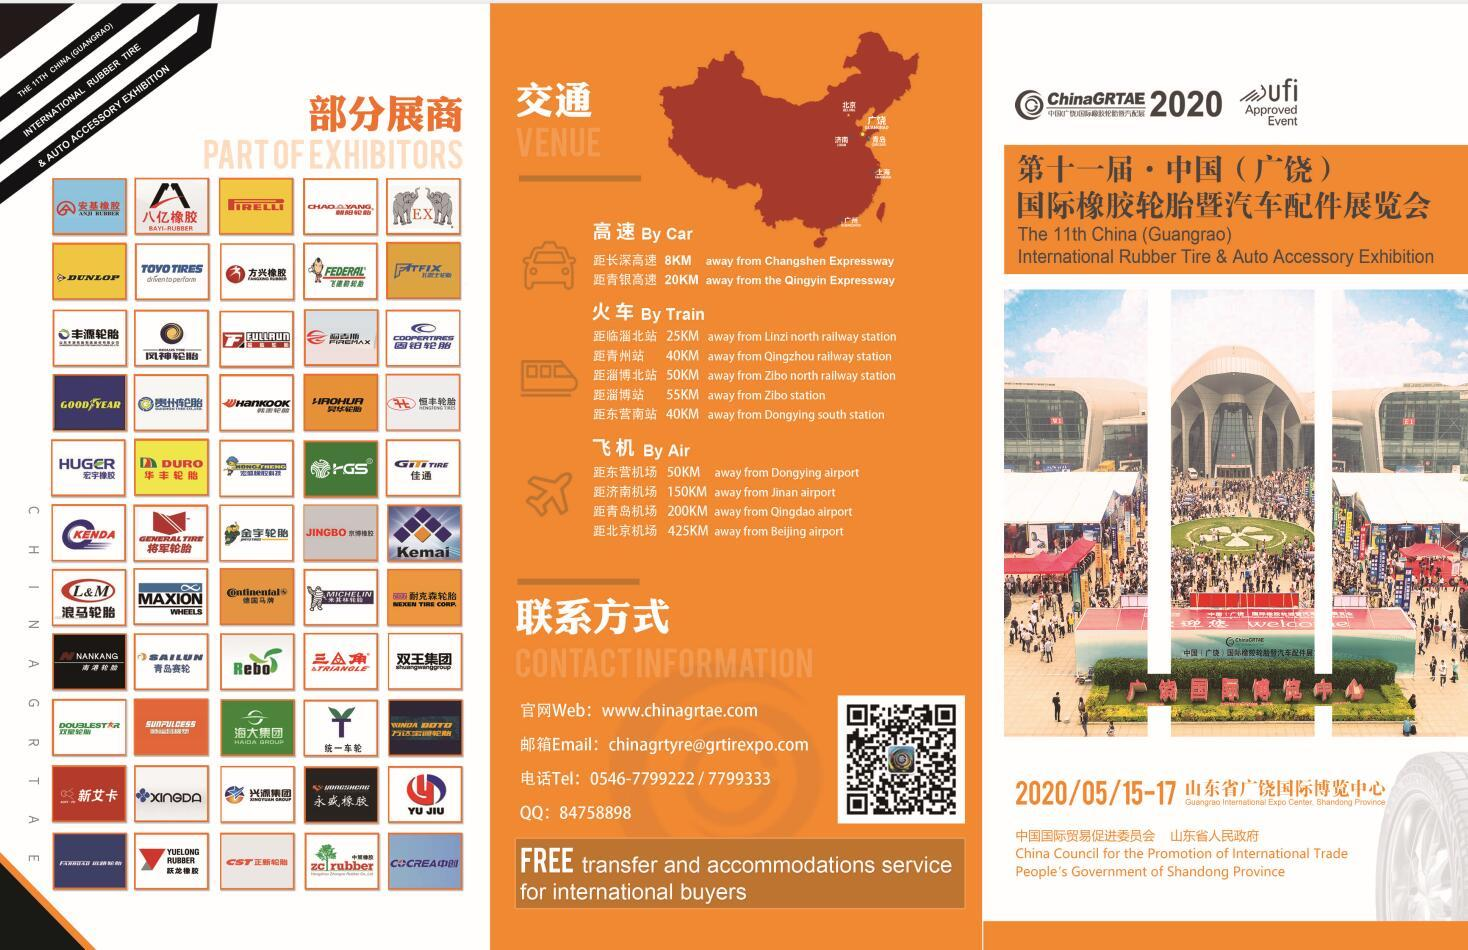 The 11th China (Guangrao) International Rubber Tire   Auto Accessory Exhibition  3